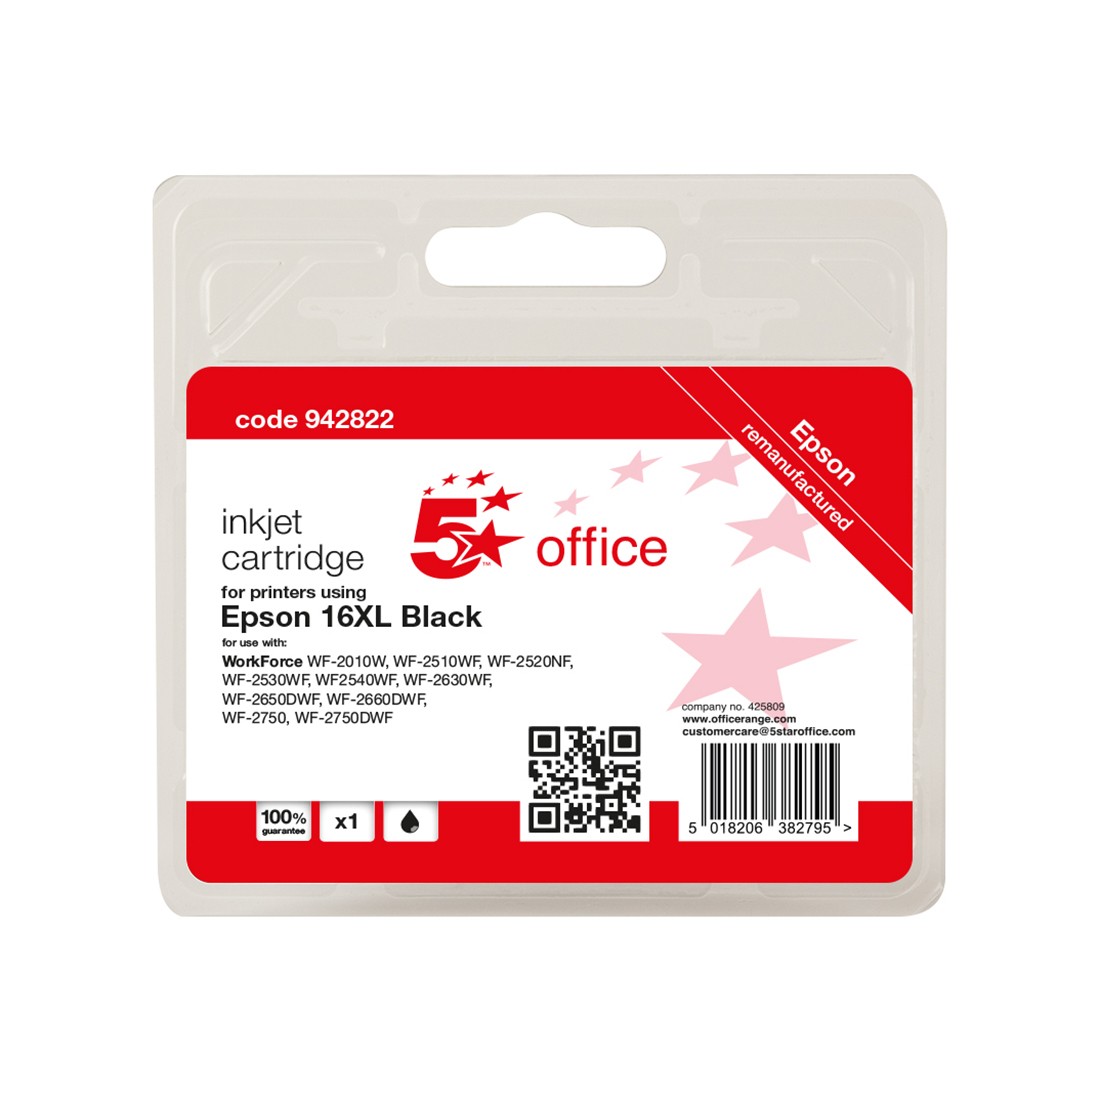 Inkjet Cartridges 5 Star Office Remanufactured Inkjet Cartridge Page Life Black 500pp Epson C13T16314012 Alternative